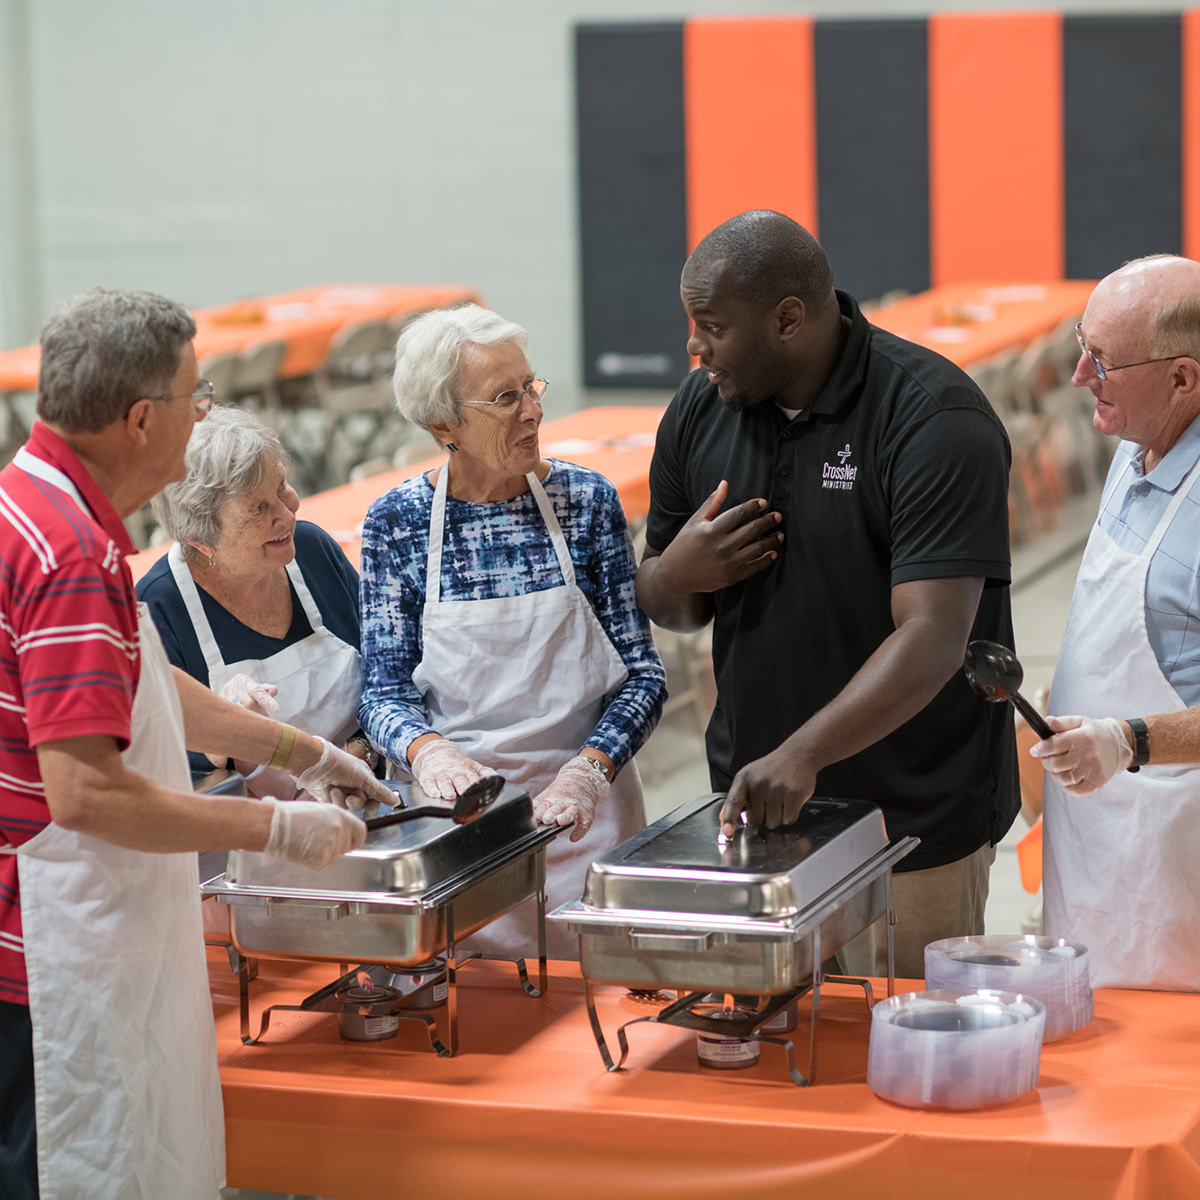 Carl Edwards, CrossNet Youth Director, works closely with Fred & Eileen Eck and Don & Lois Aldrich as Garden Spot Villages serves a community meal each month.